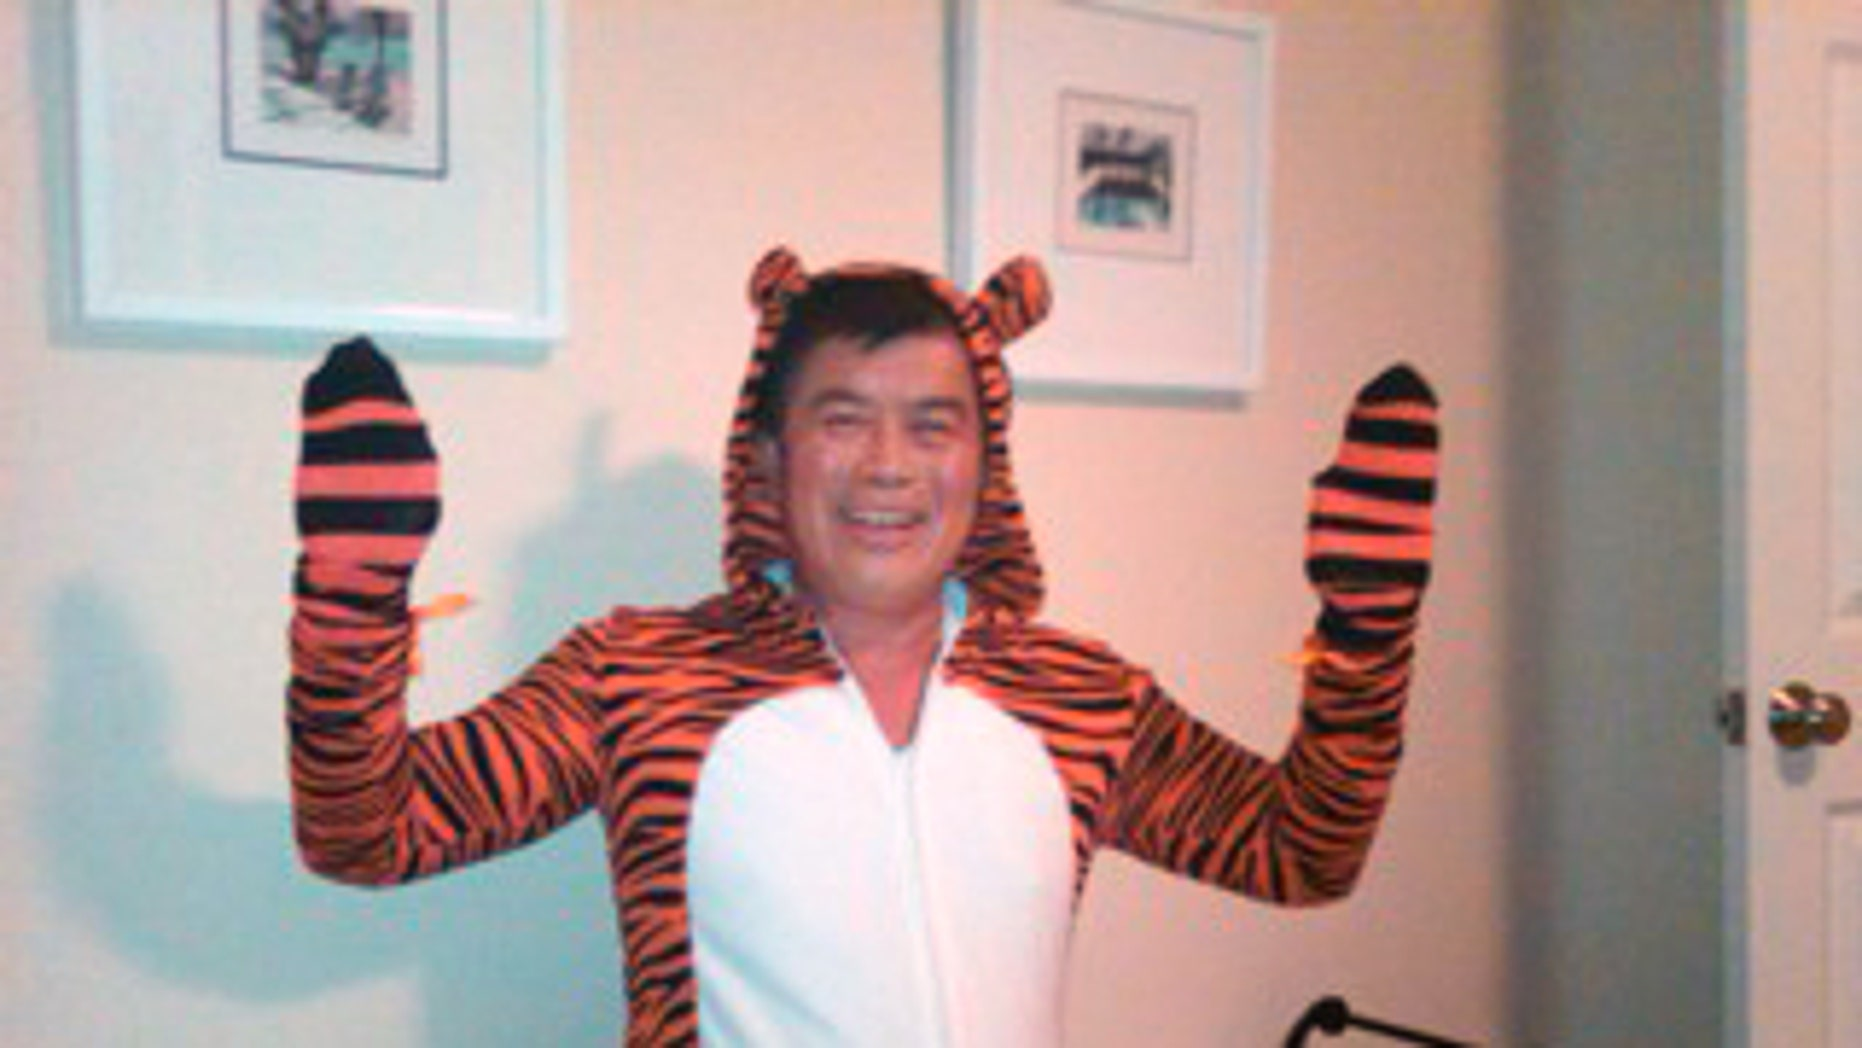 "FILE - In this image provided by the Willamette Week newspaper, and taken Oct. 2, 2010 in Portland, Ore, U.S. Rep. David Wu is seen in a tiger costume. The Oregon congressman says that he accepted prescription drugs from a campaign contributor last October, around the time when members of his staff complained of his erratic behavior. Wu said the photos were taken while he was ""joshing around"" with his children in October just before Halloween. (AP Photo/Willamette Week)"